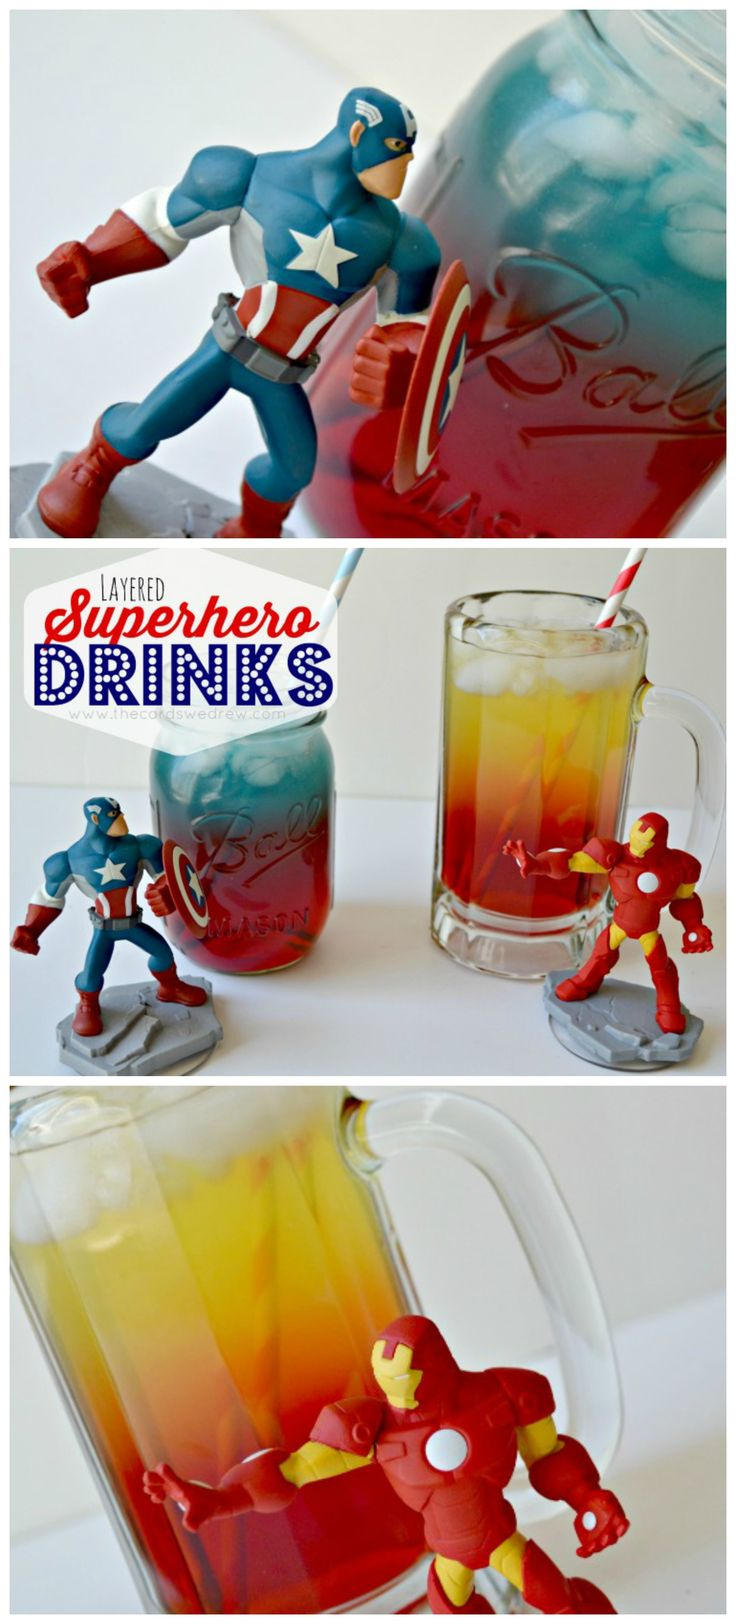 Drinks for little superheroes! #InfinityHeroes #shop